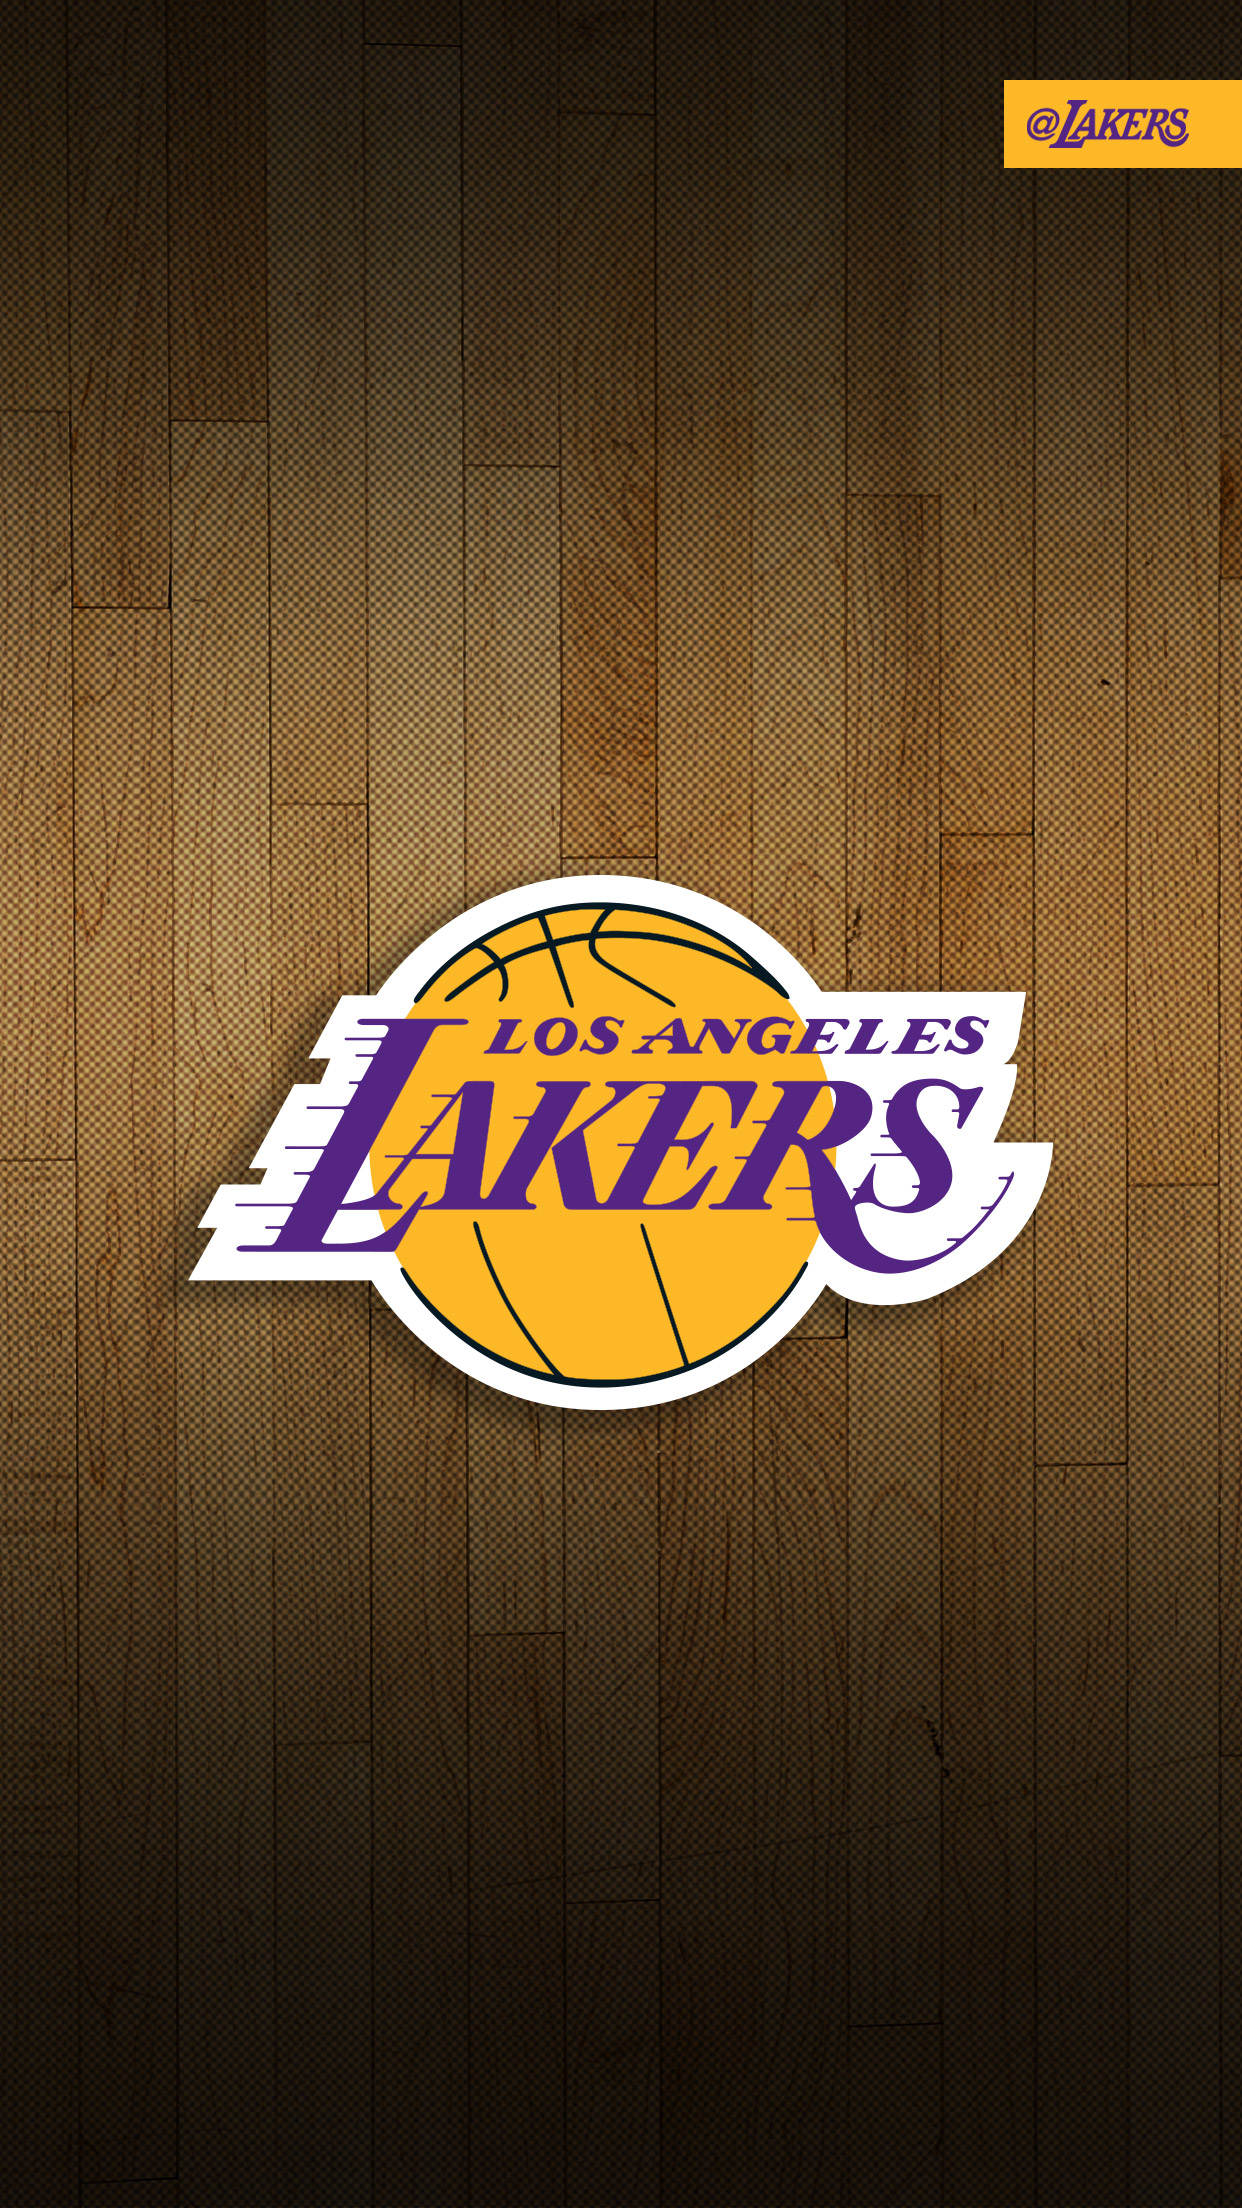 lakers iphone wallpaper basketball lakers wallpaper for iphone x 8 7 6 free 12560